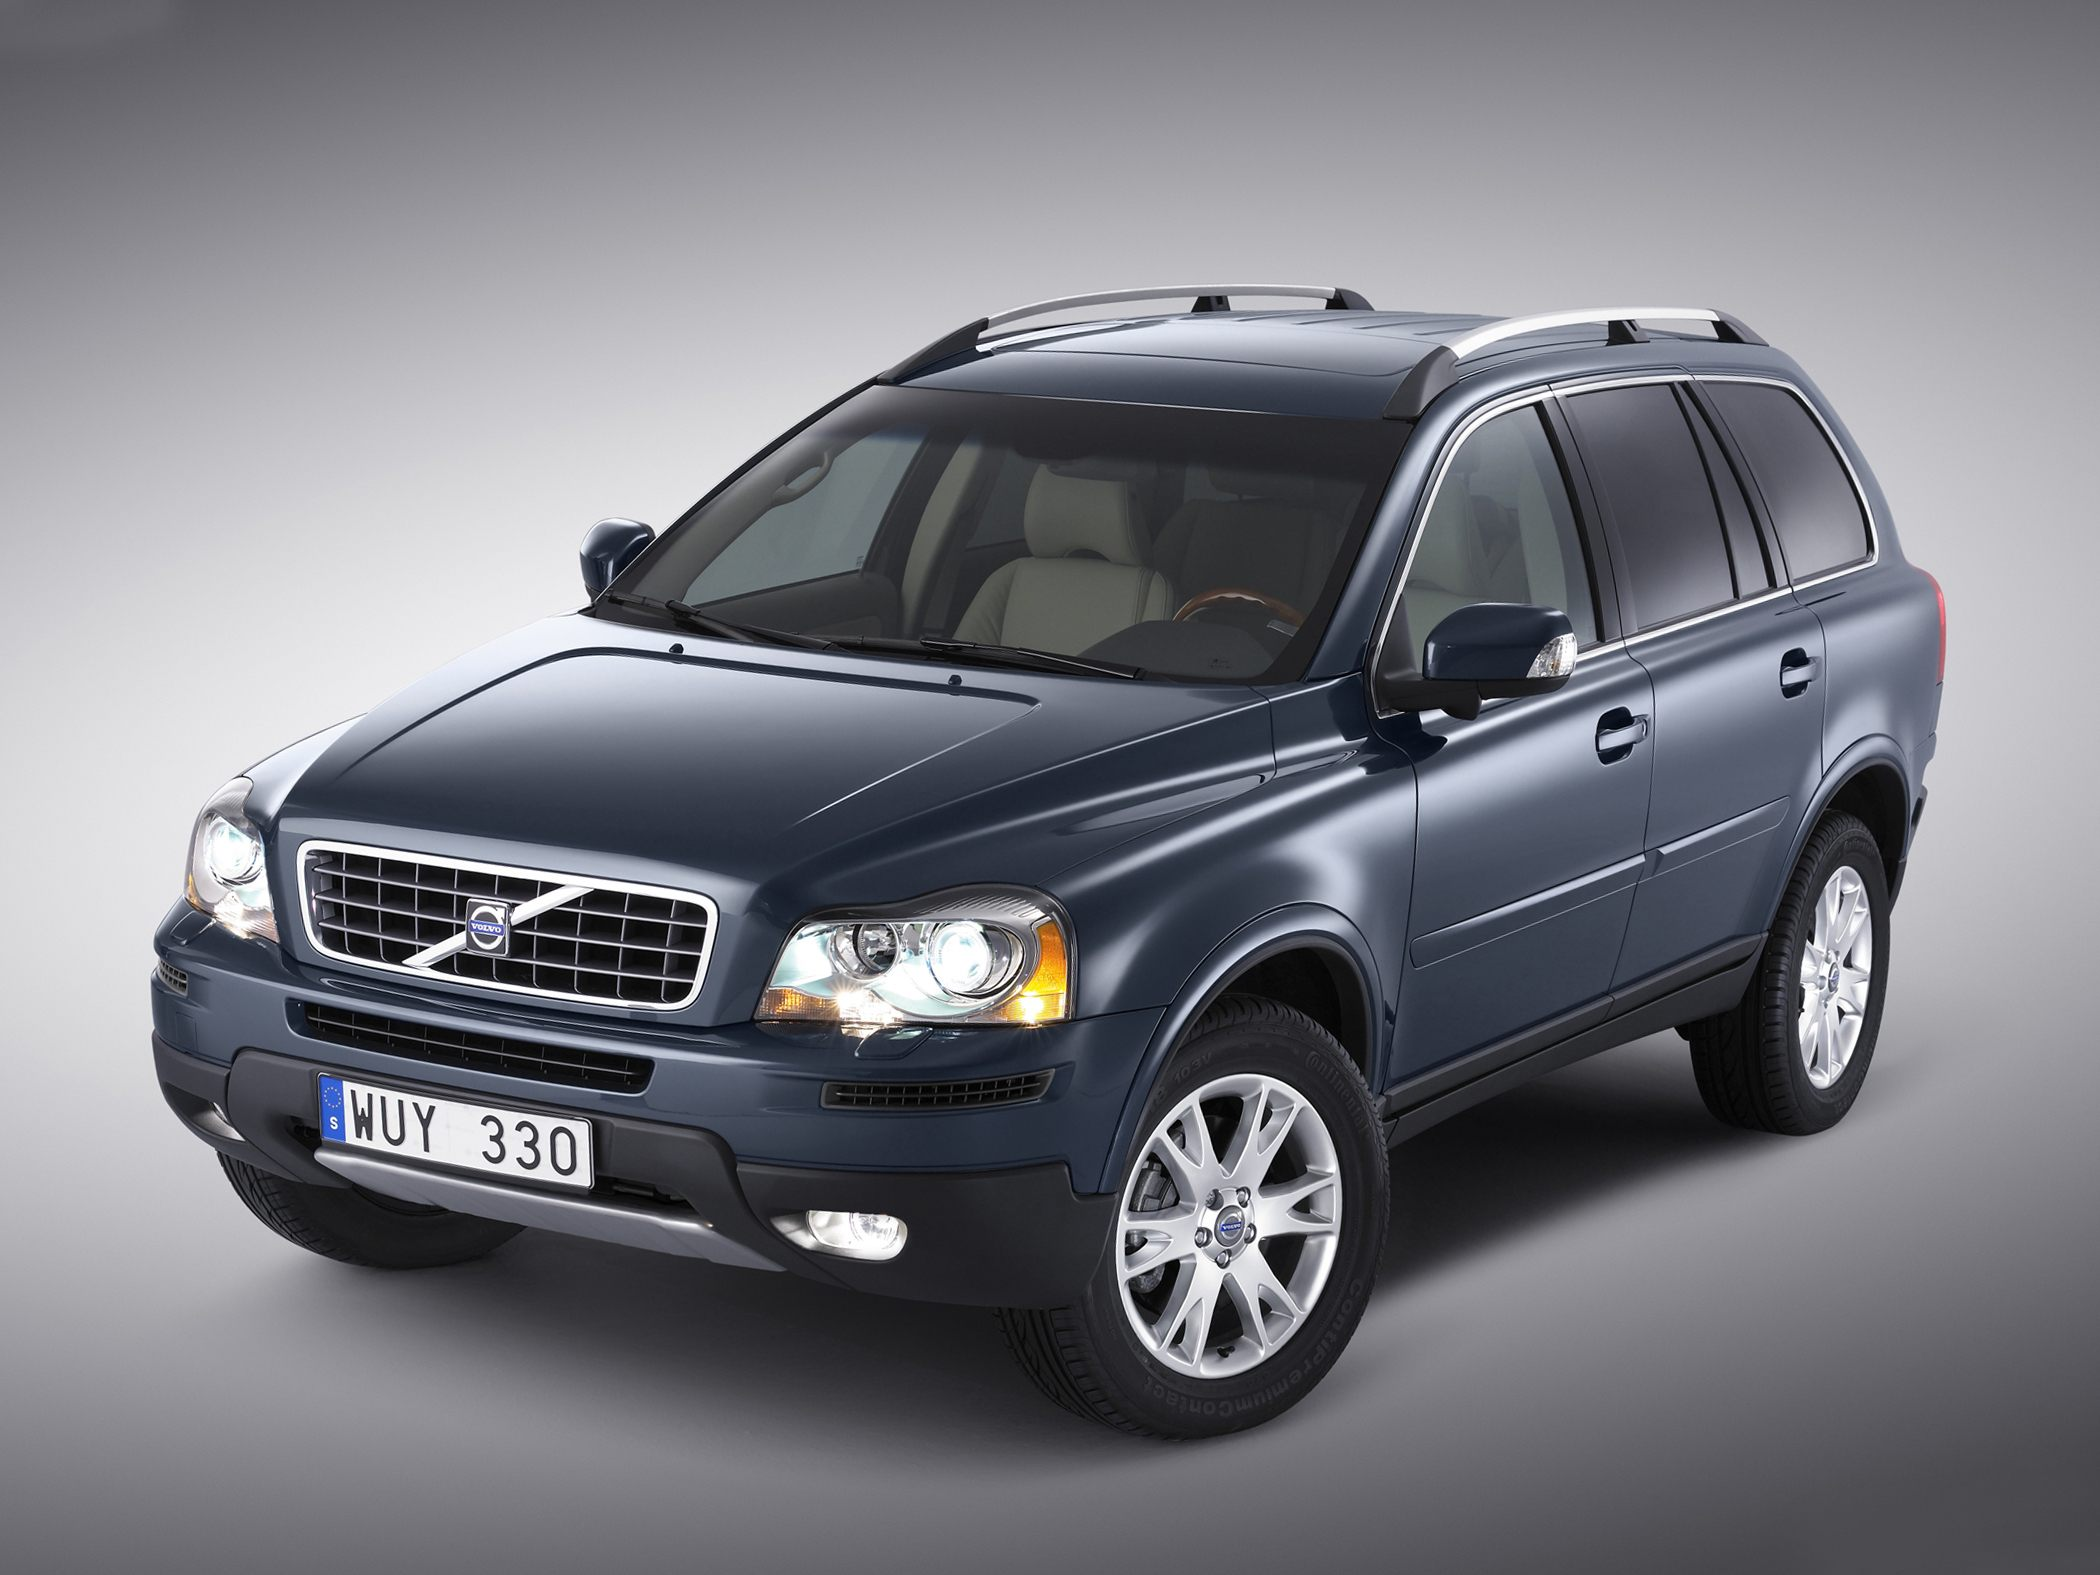 2011 Volvo XC90 Suv 5-door